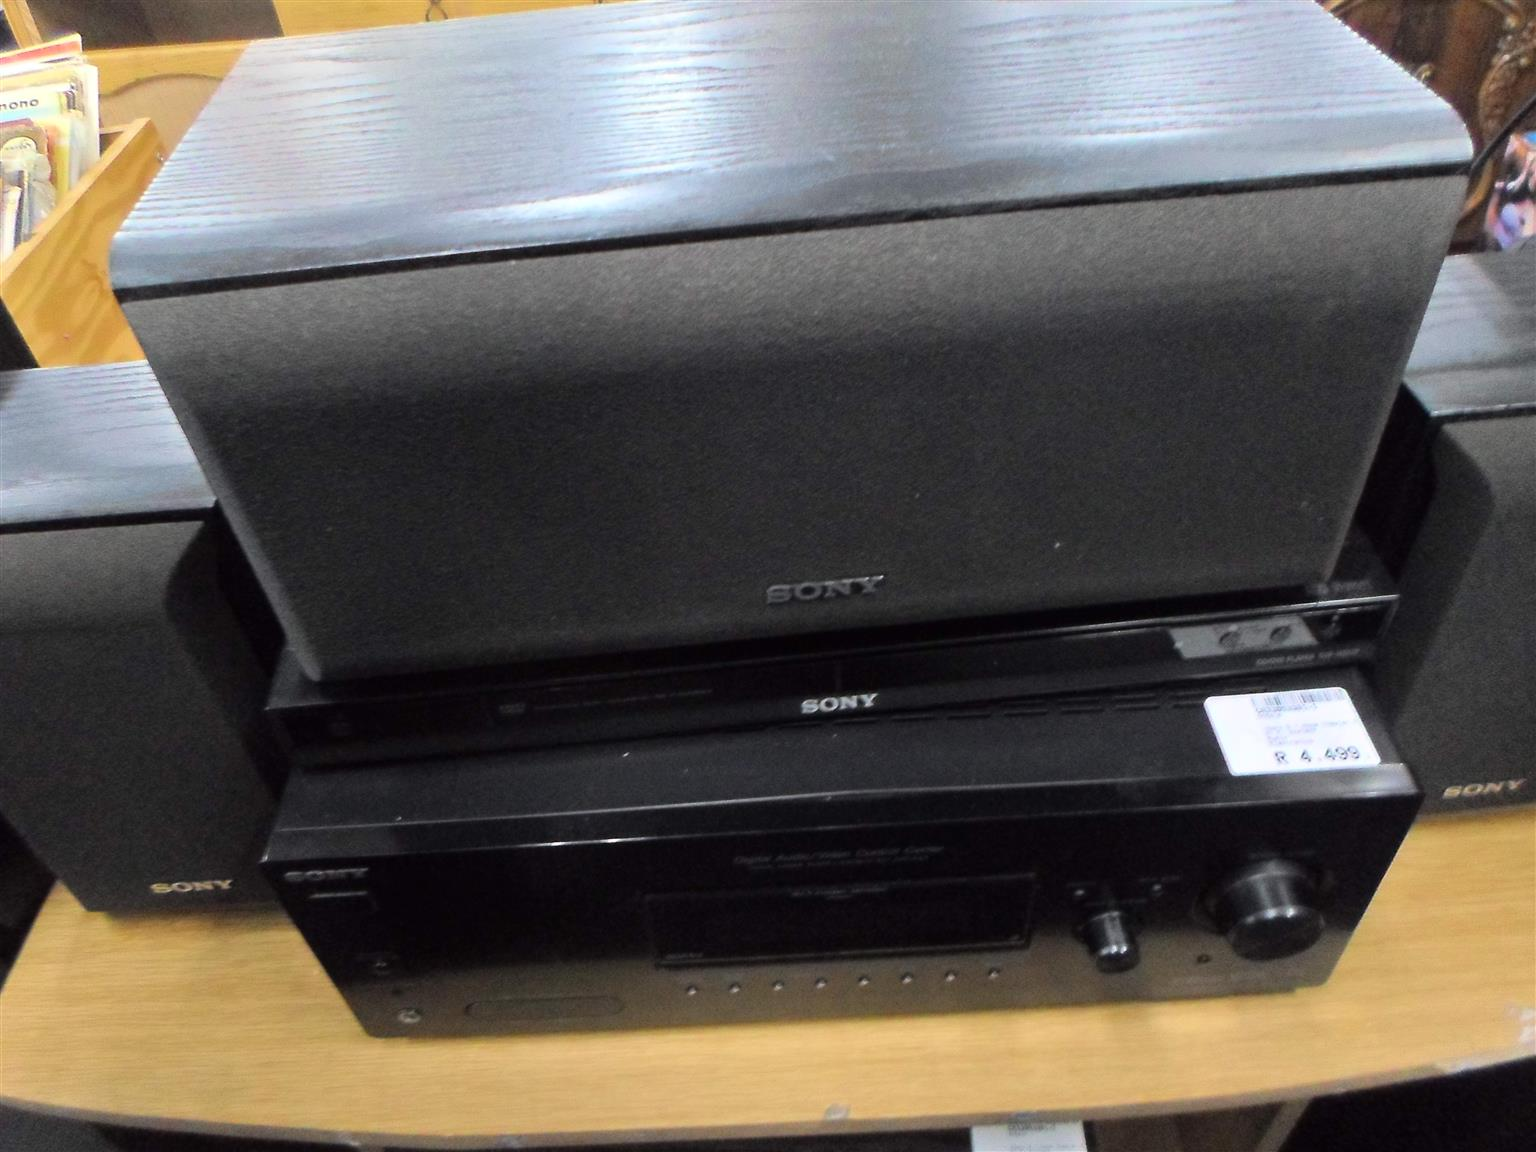 5.1Ch Sony Home Theater System